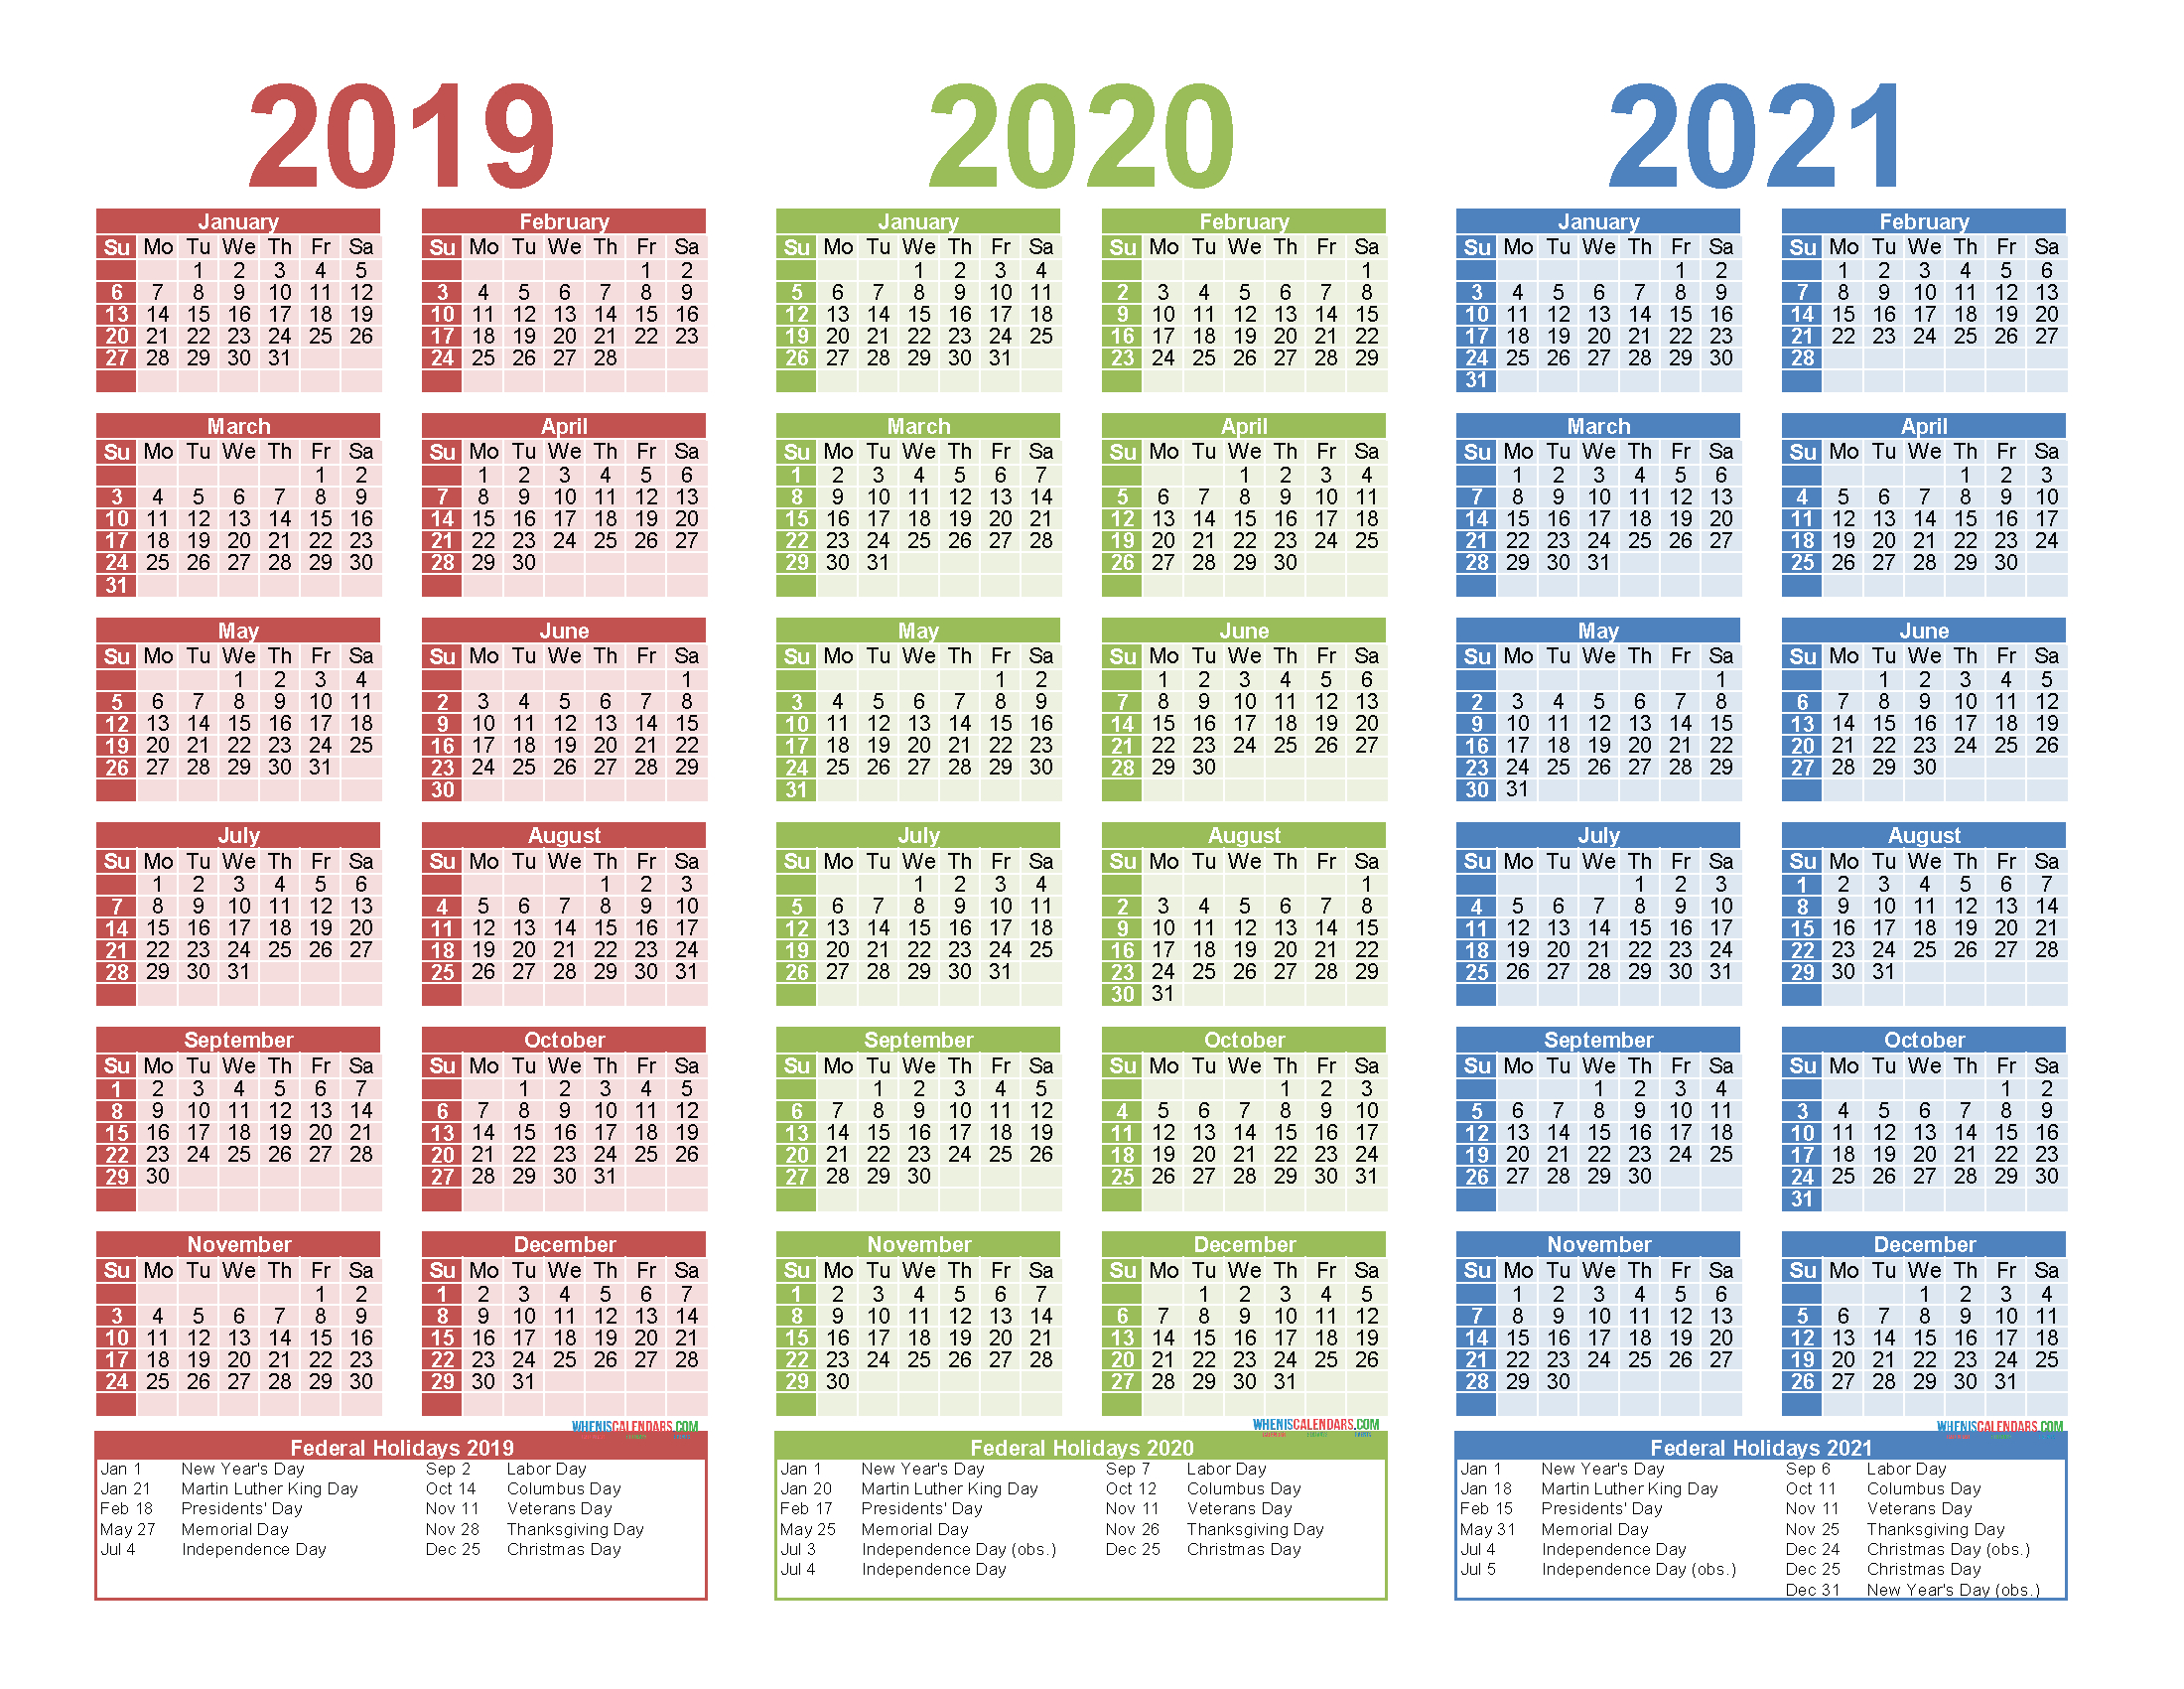 3 Year Calendar Printable 2019 2020 2021 Free Calendar with regard to 3 Year Calendar 2020 To 2021 Excel